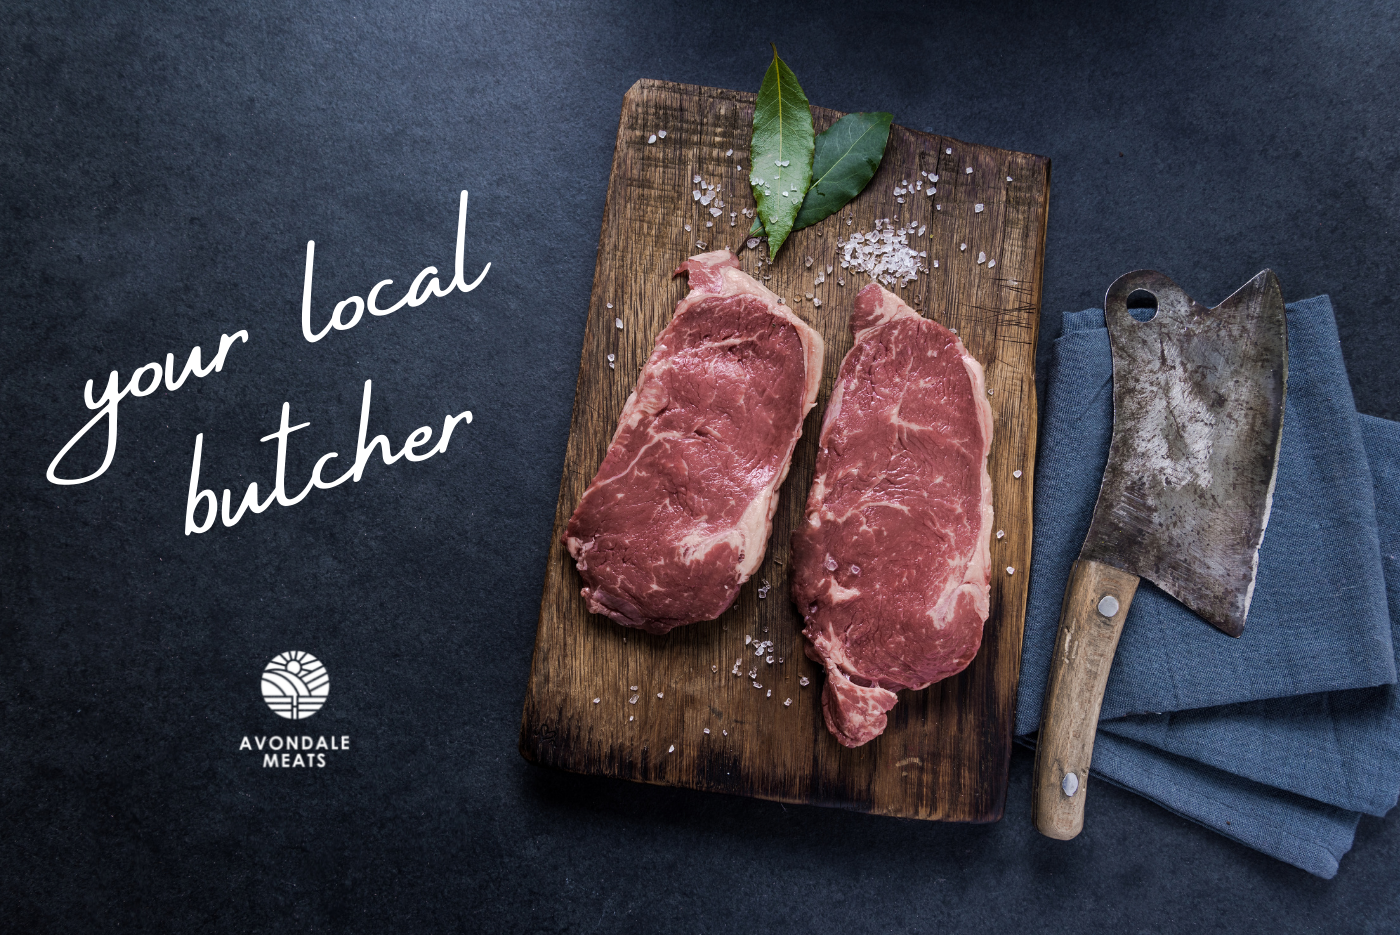 5 Reasons to Shop at your Local Butcher